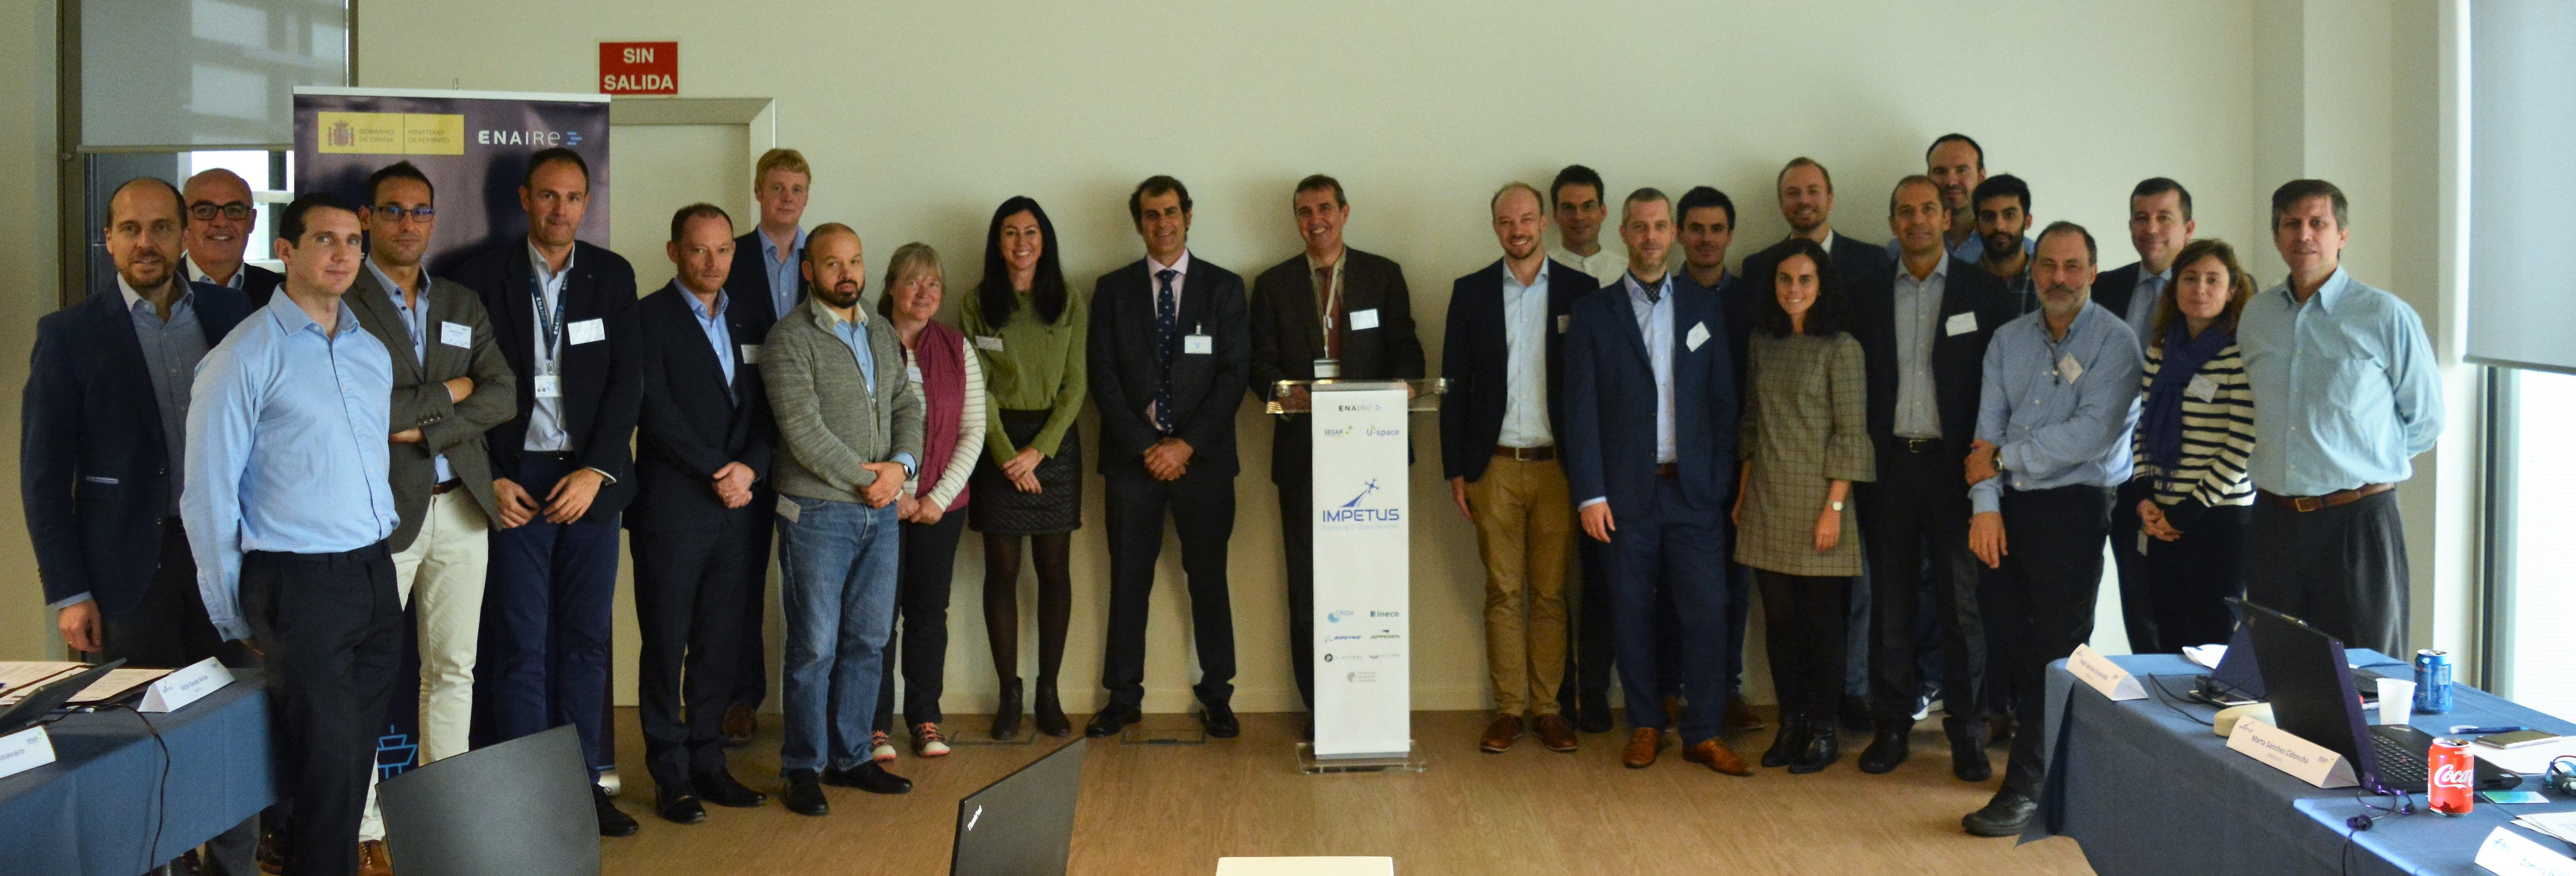 First IMPETUS workshop u-space drones information services advisory board sesar